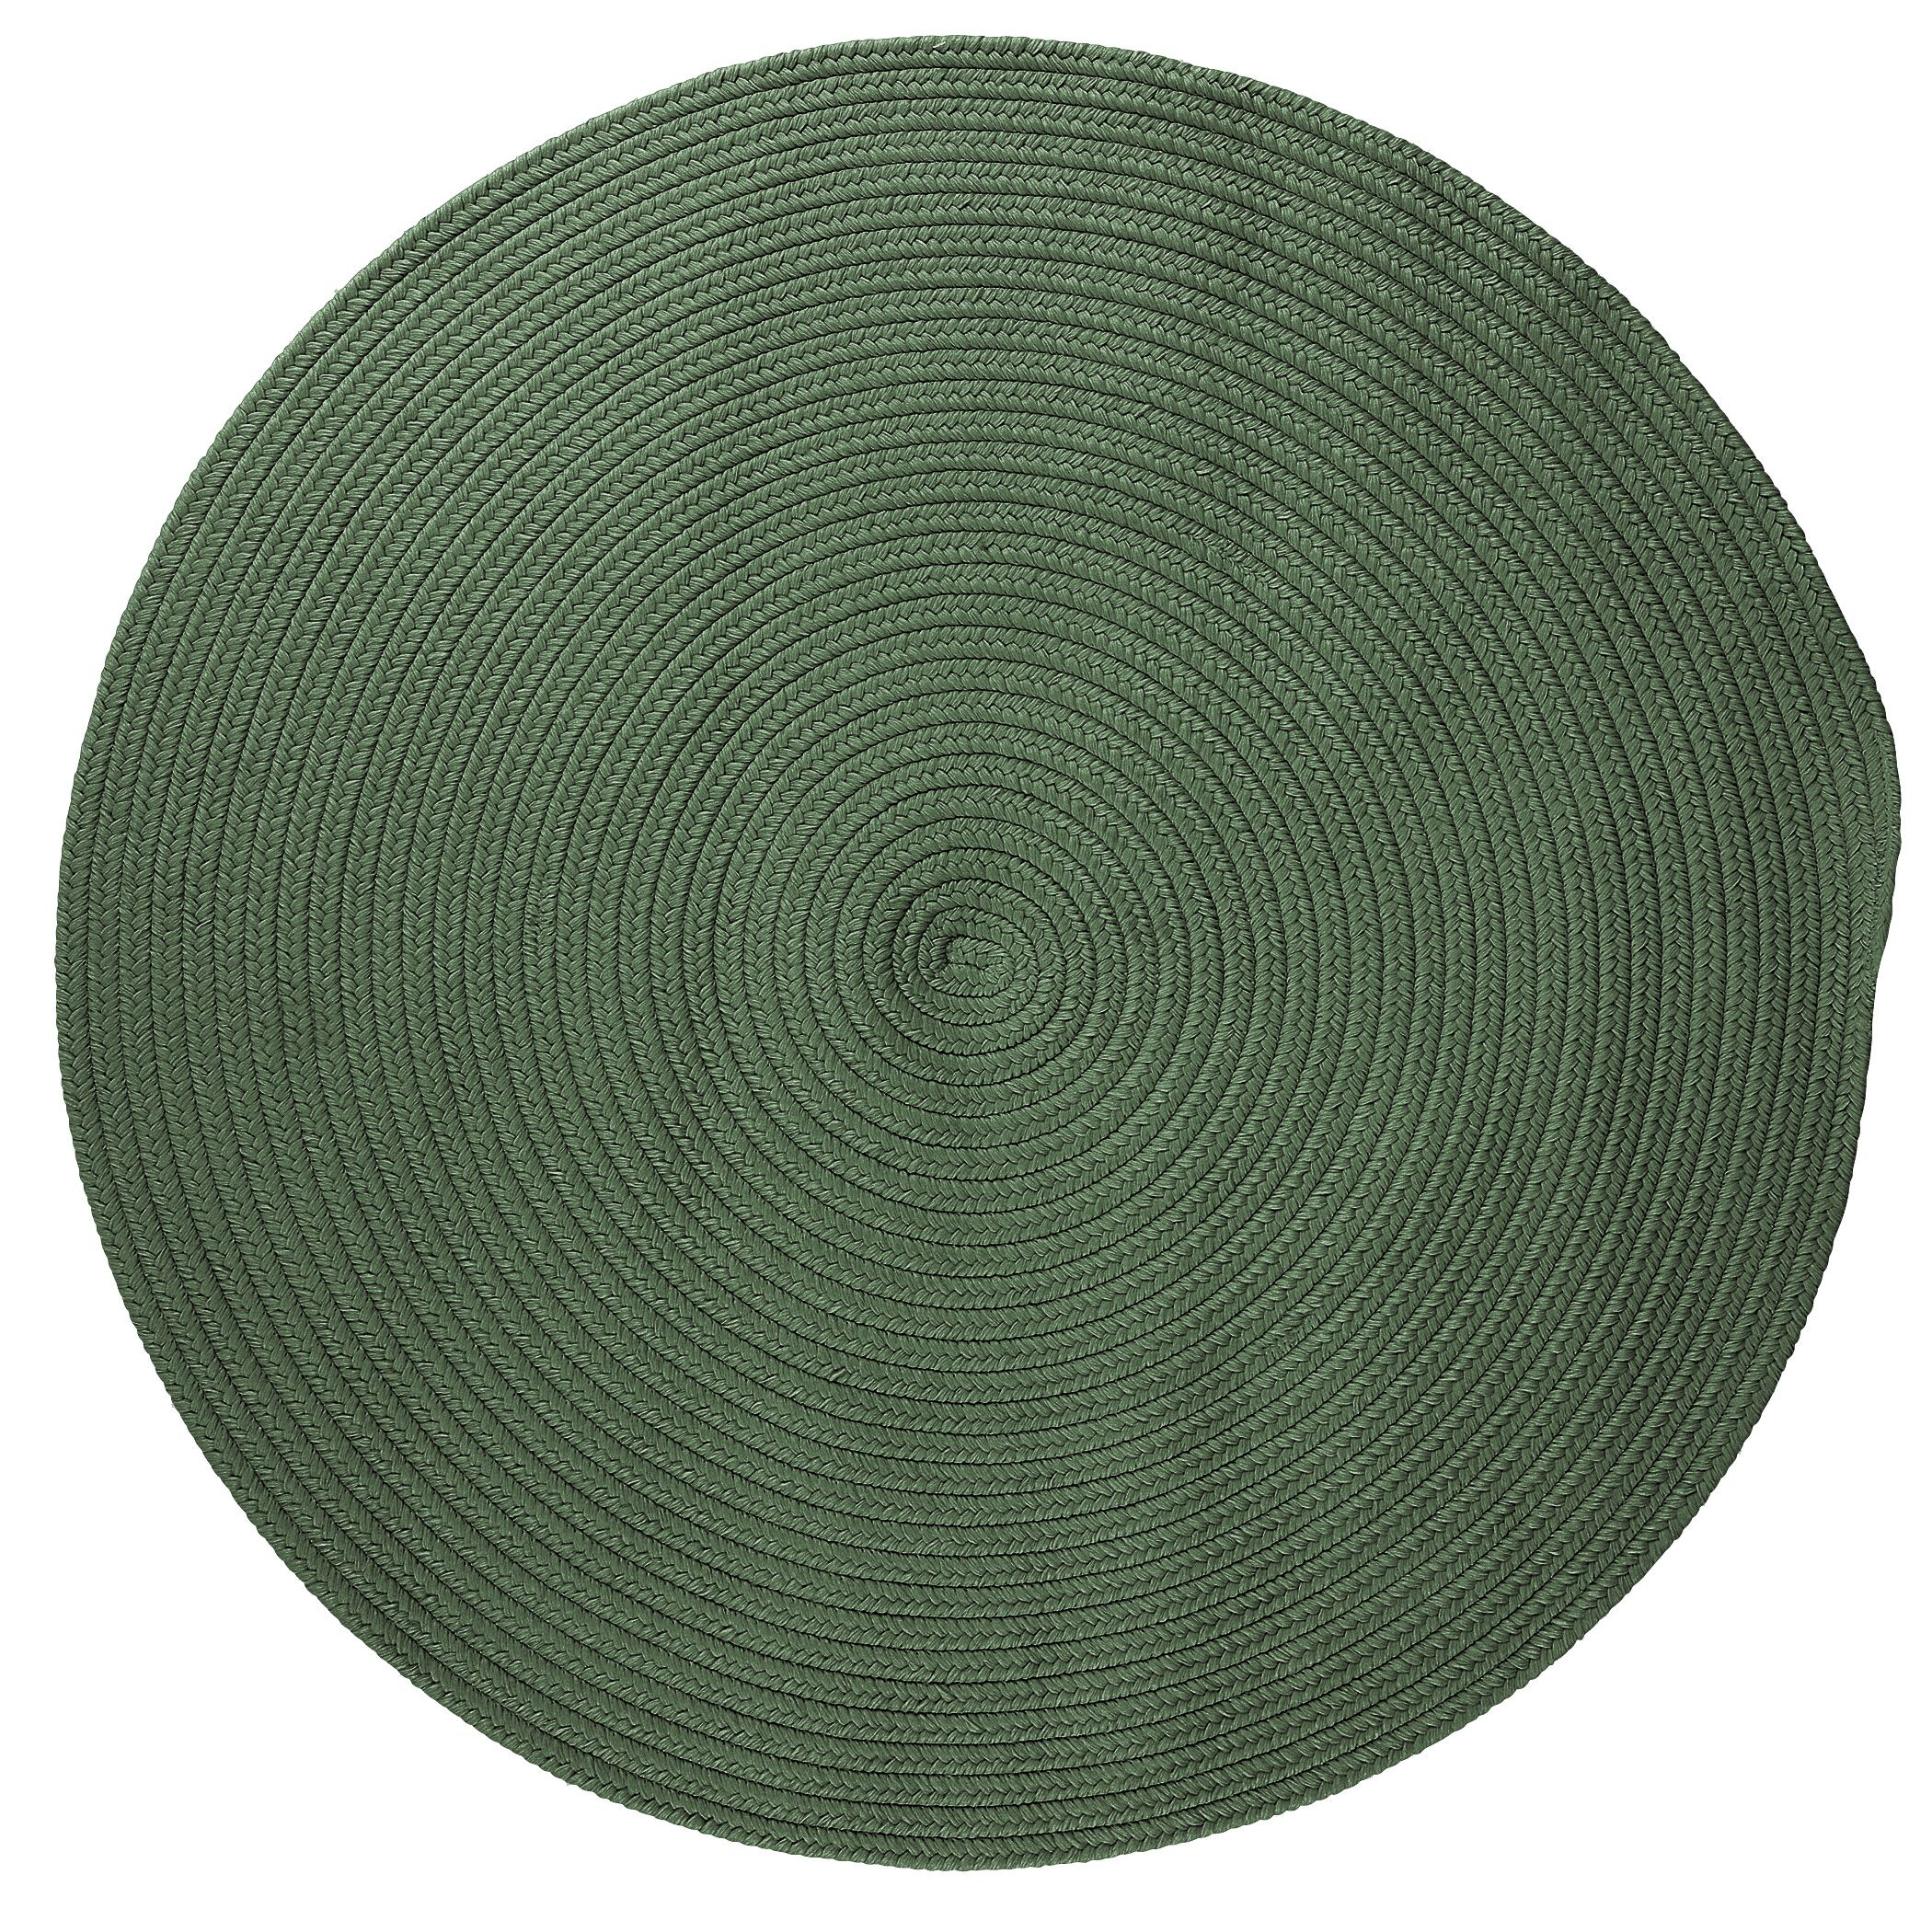 Mcintyre Myrtle Green Indoor/Outdoor Area Rug Rug Size: Round 4'